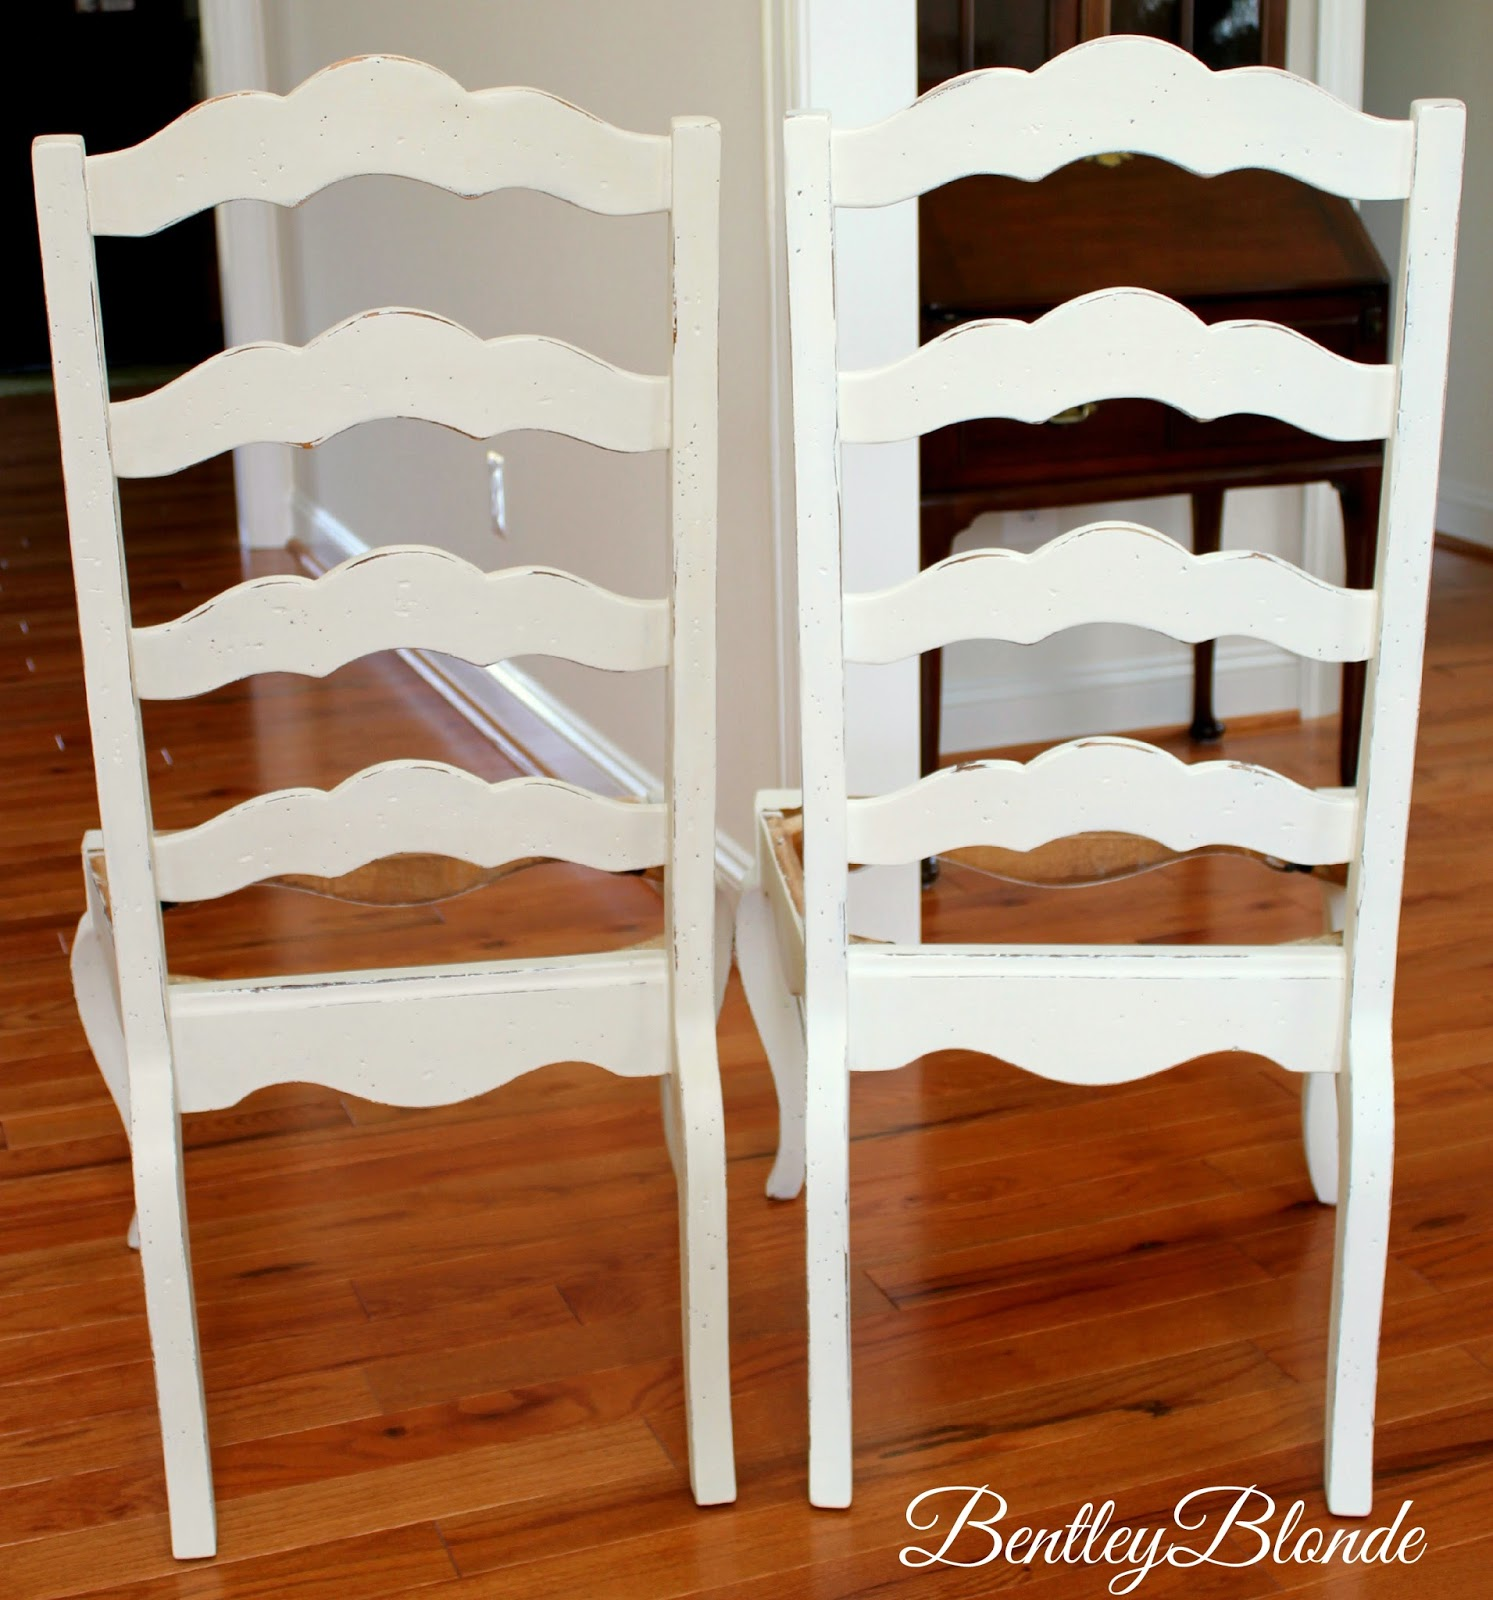 Here Are 2 Of My Dining Chairs The Left Chair Is Painted In Old Ochre And Right White As You Can See Just A